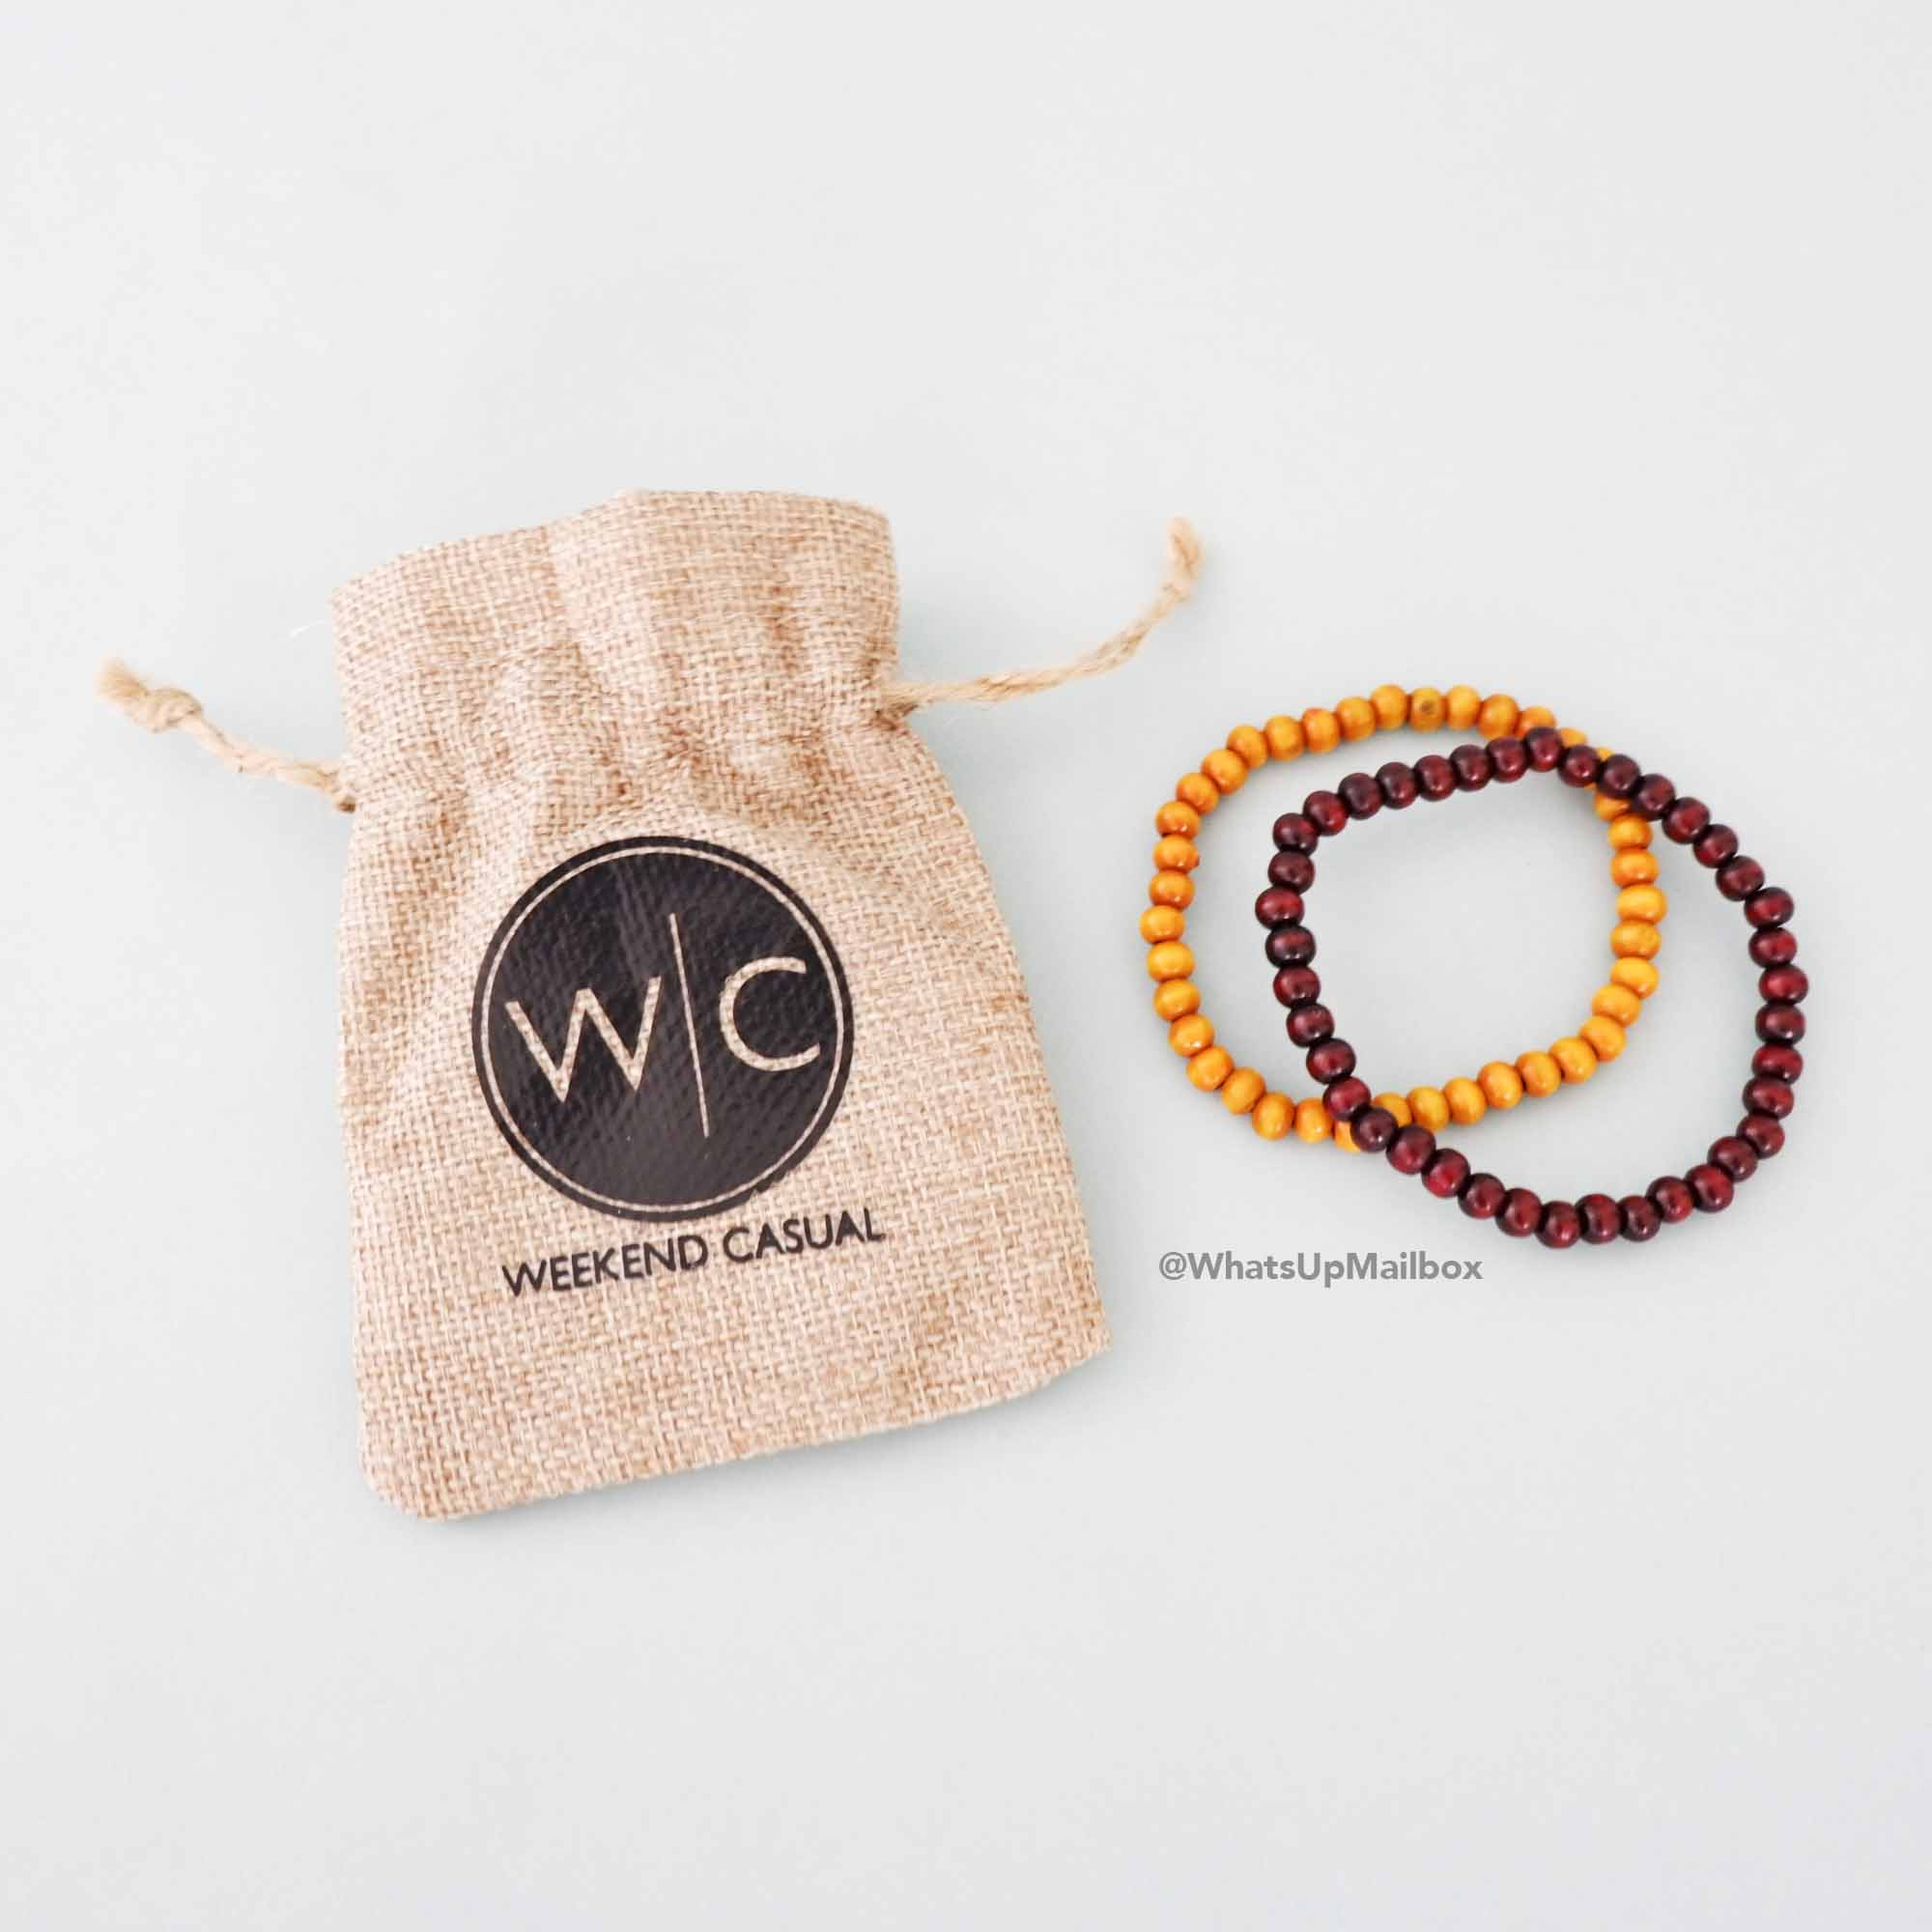 Weekend Casual Wooden Bead Bracelets